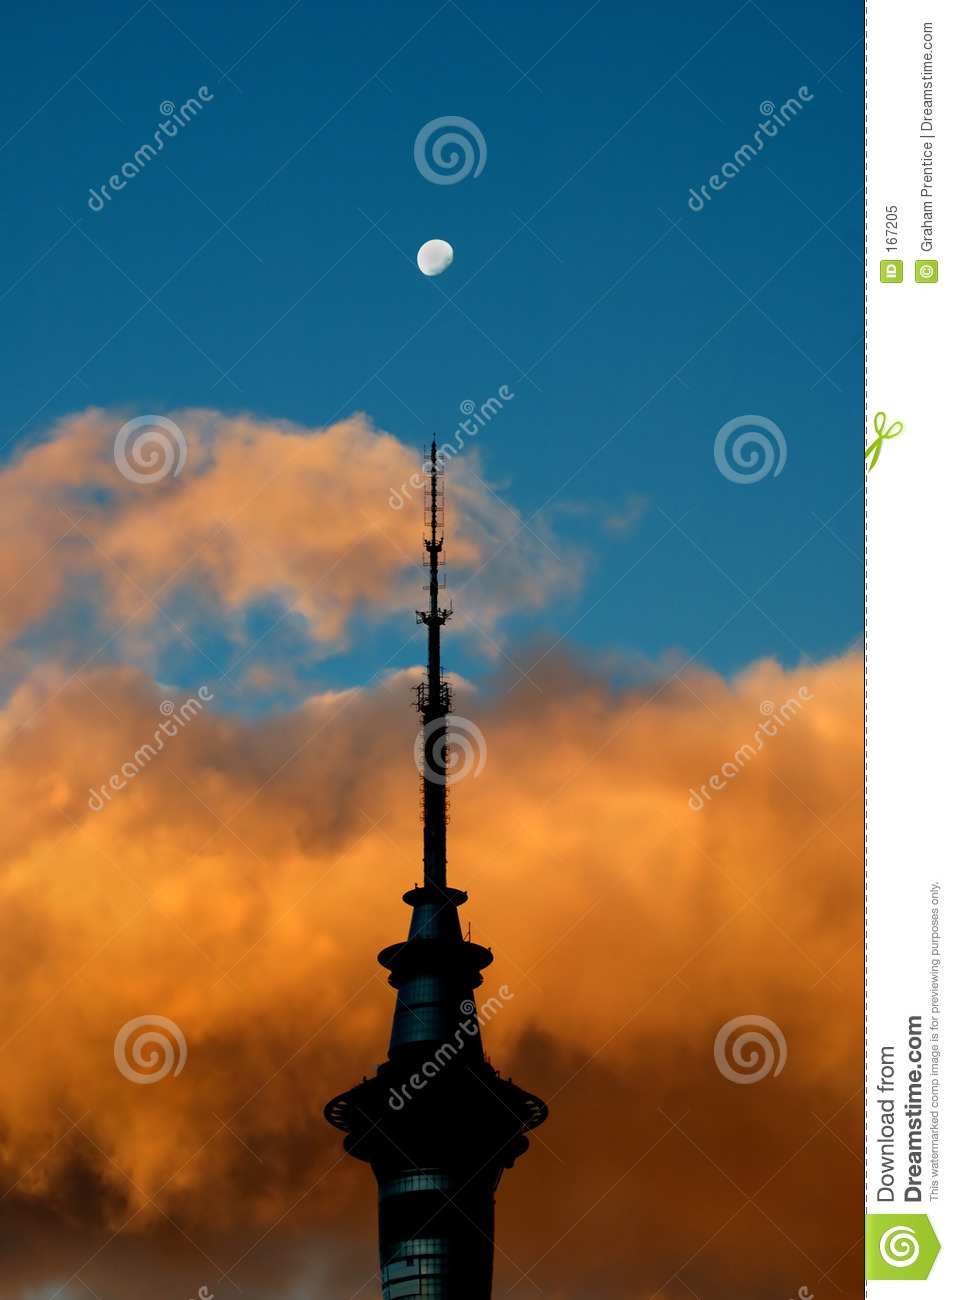 Sky tower at sunset